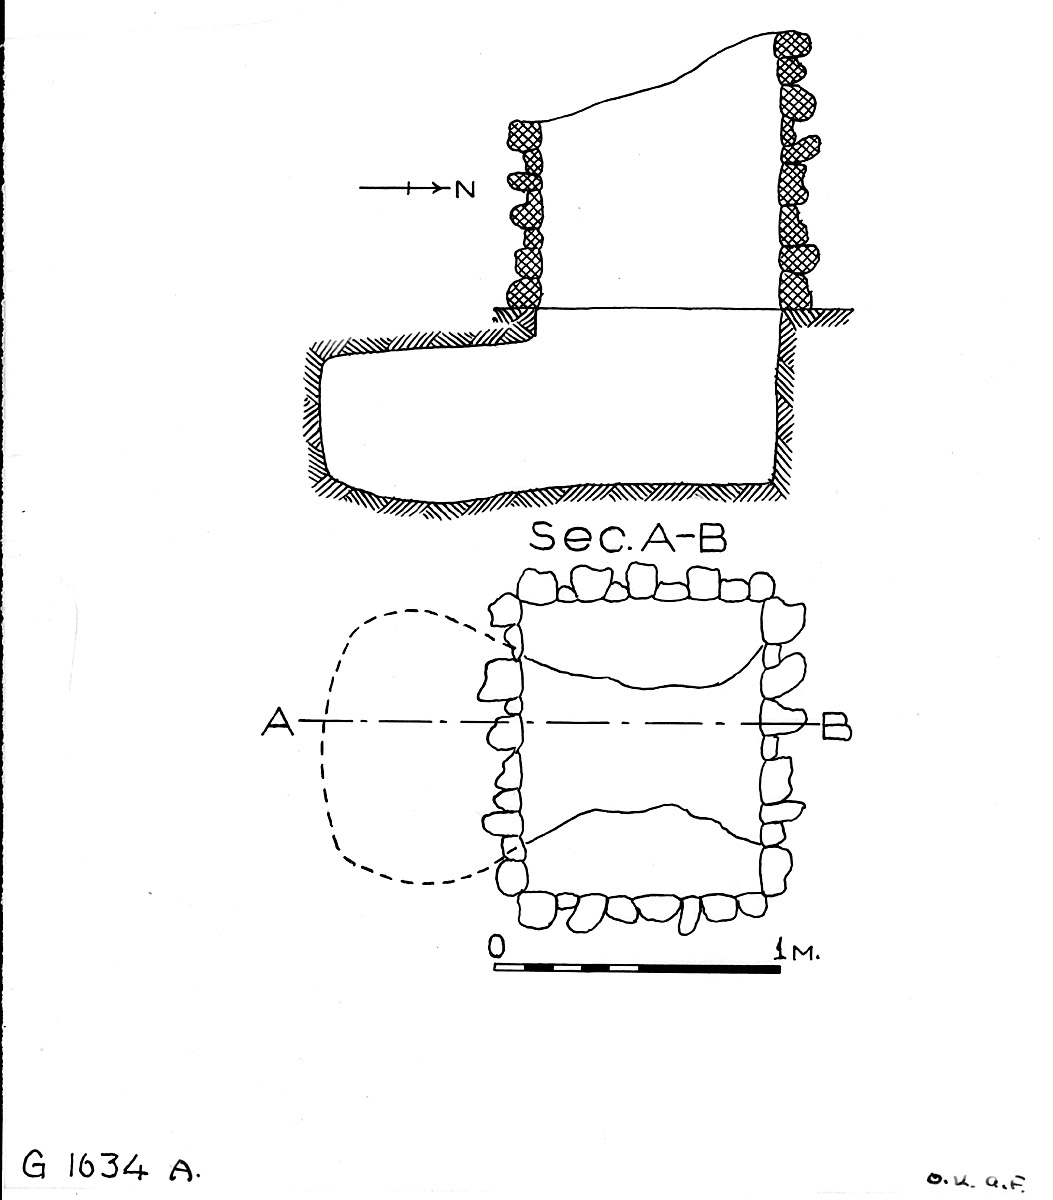 Maps and plans: G 1634, Shaft A